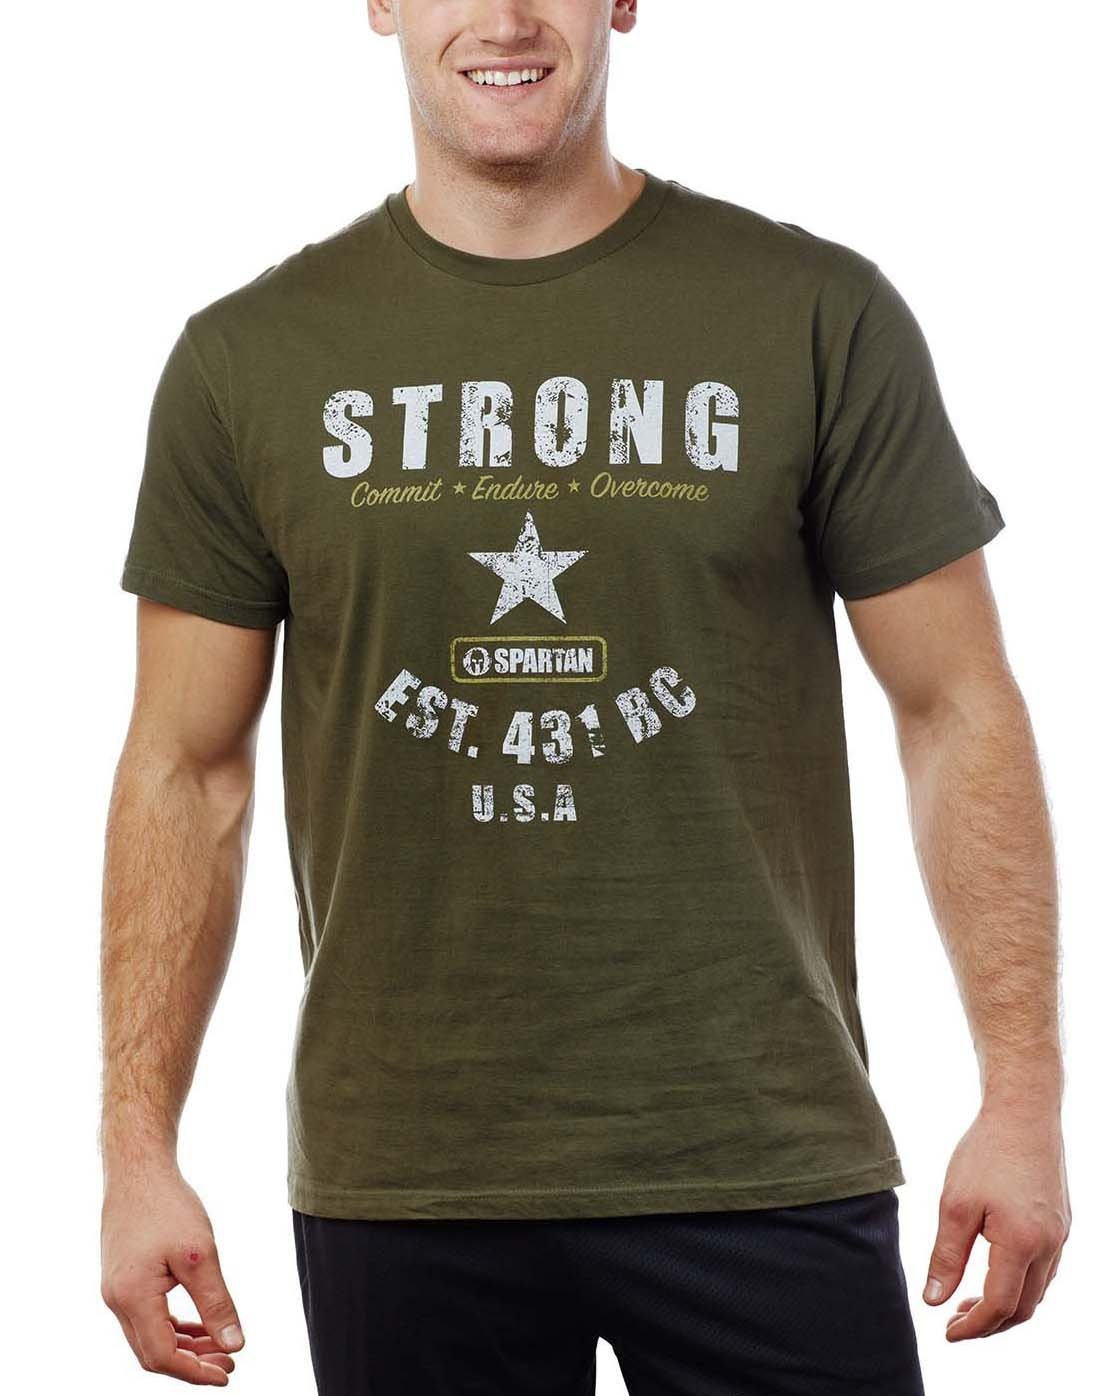 Spartan Race Shop SPARTAN Strong Tee - Men's Olive S